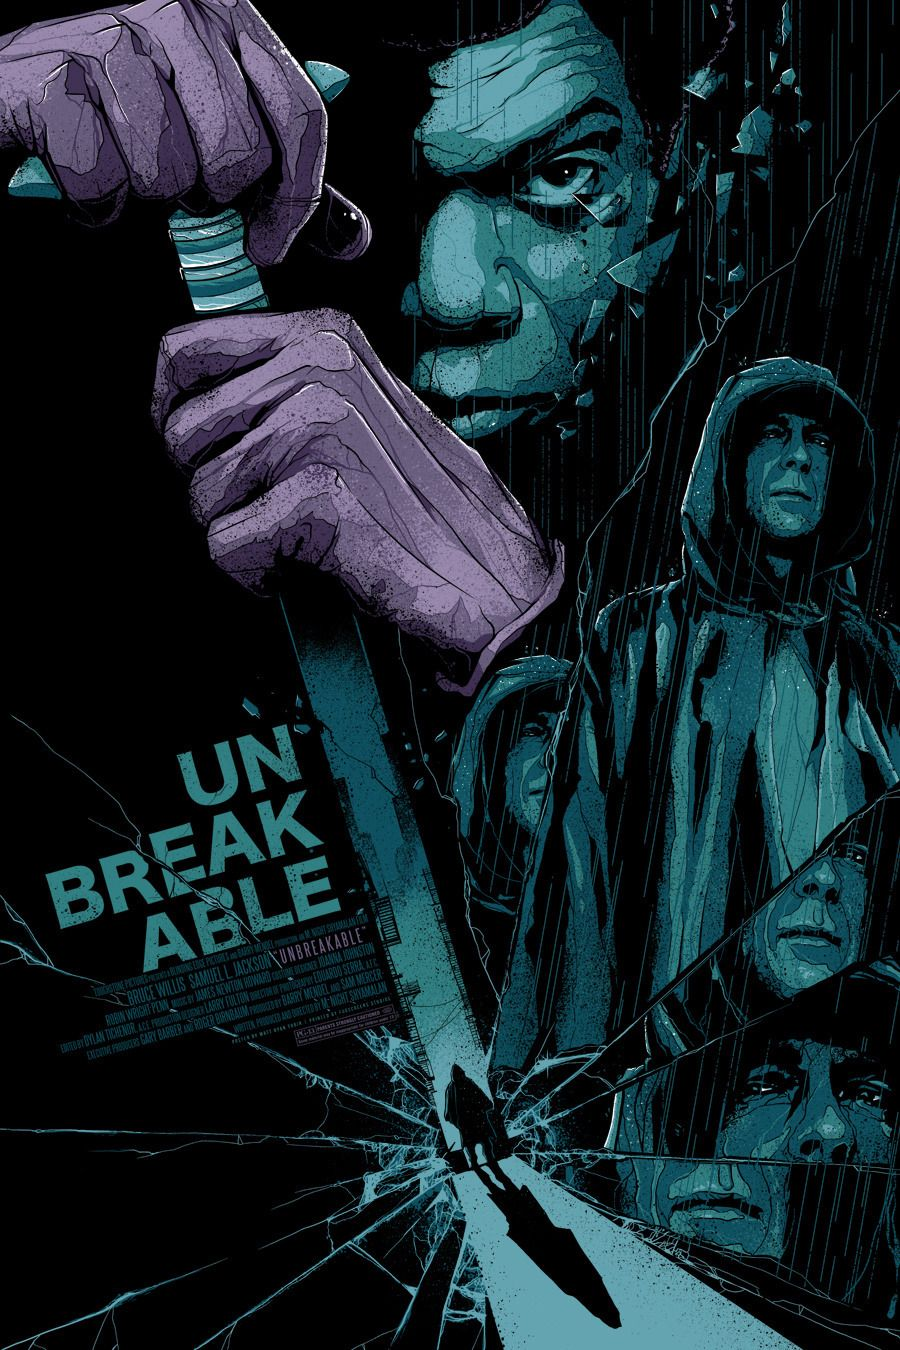 Unbreakable By Matt Ryan Tobin Logocore Alternative Movie Posters Movie Posters Design Movie Posters